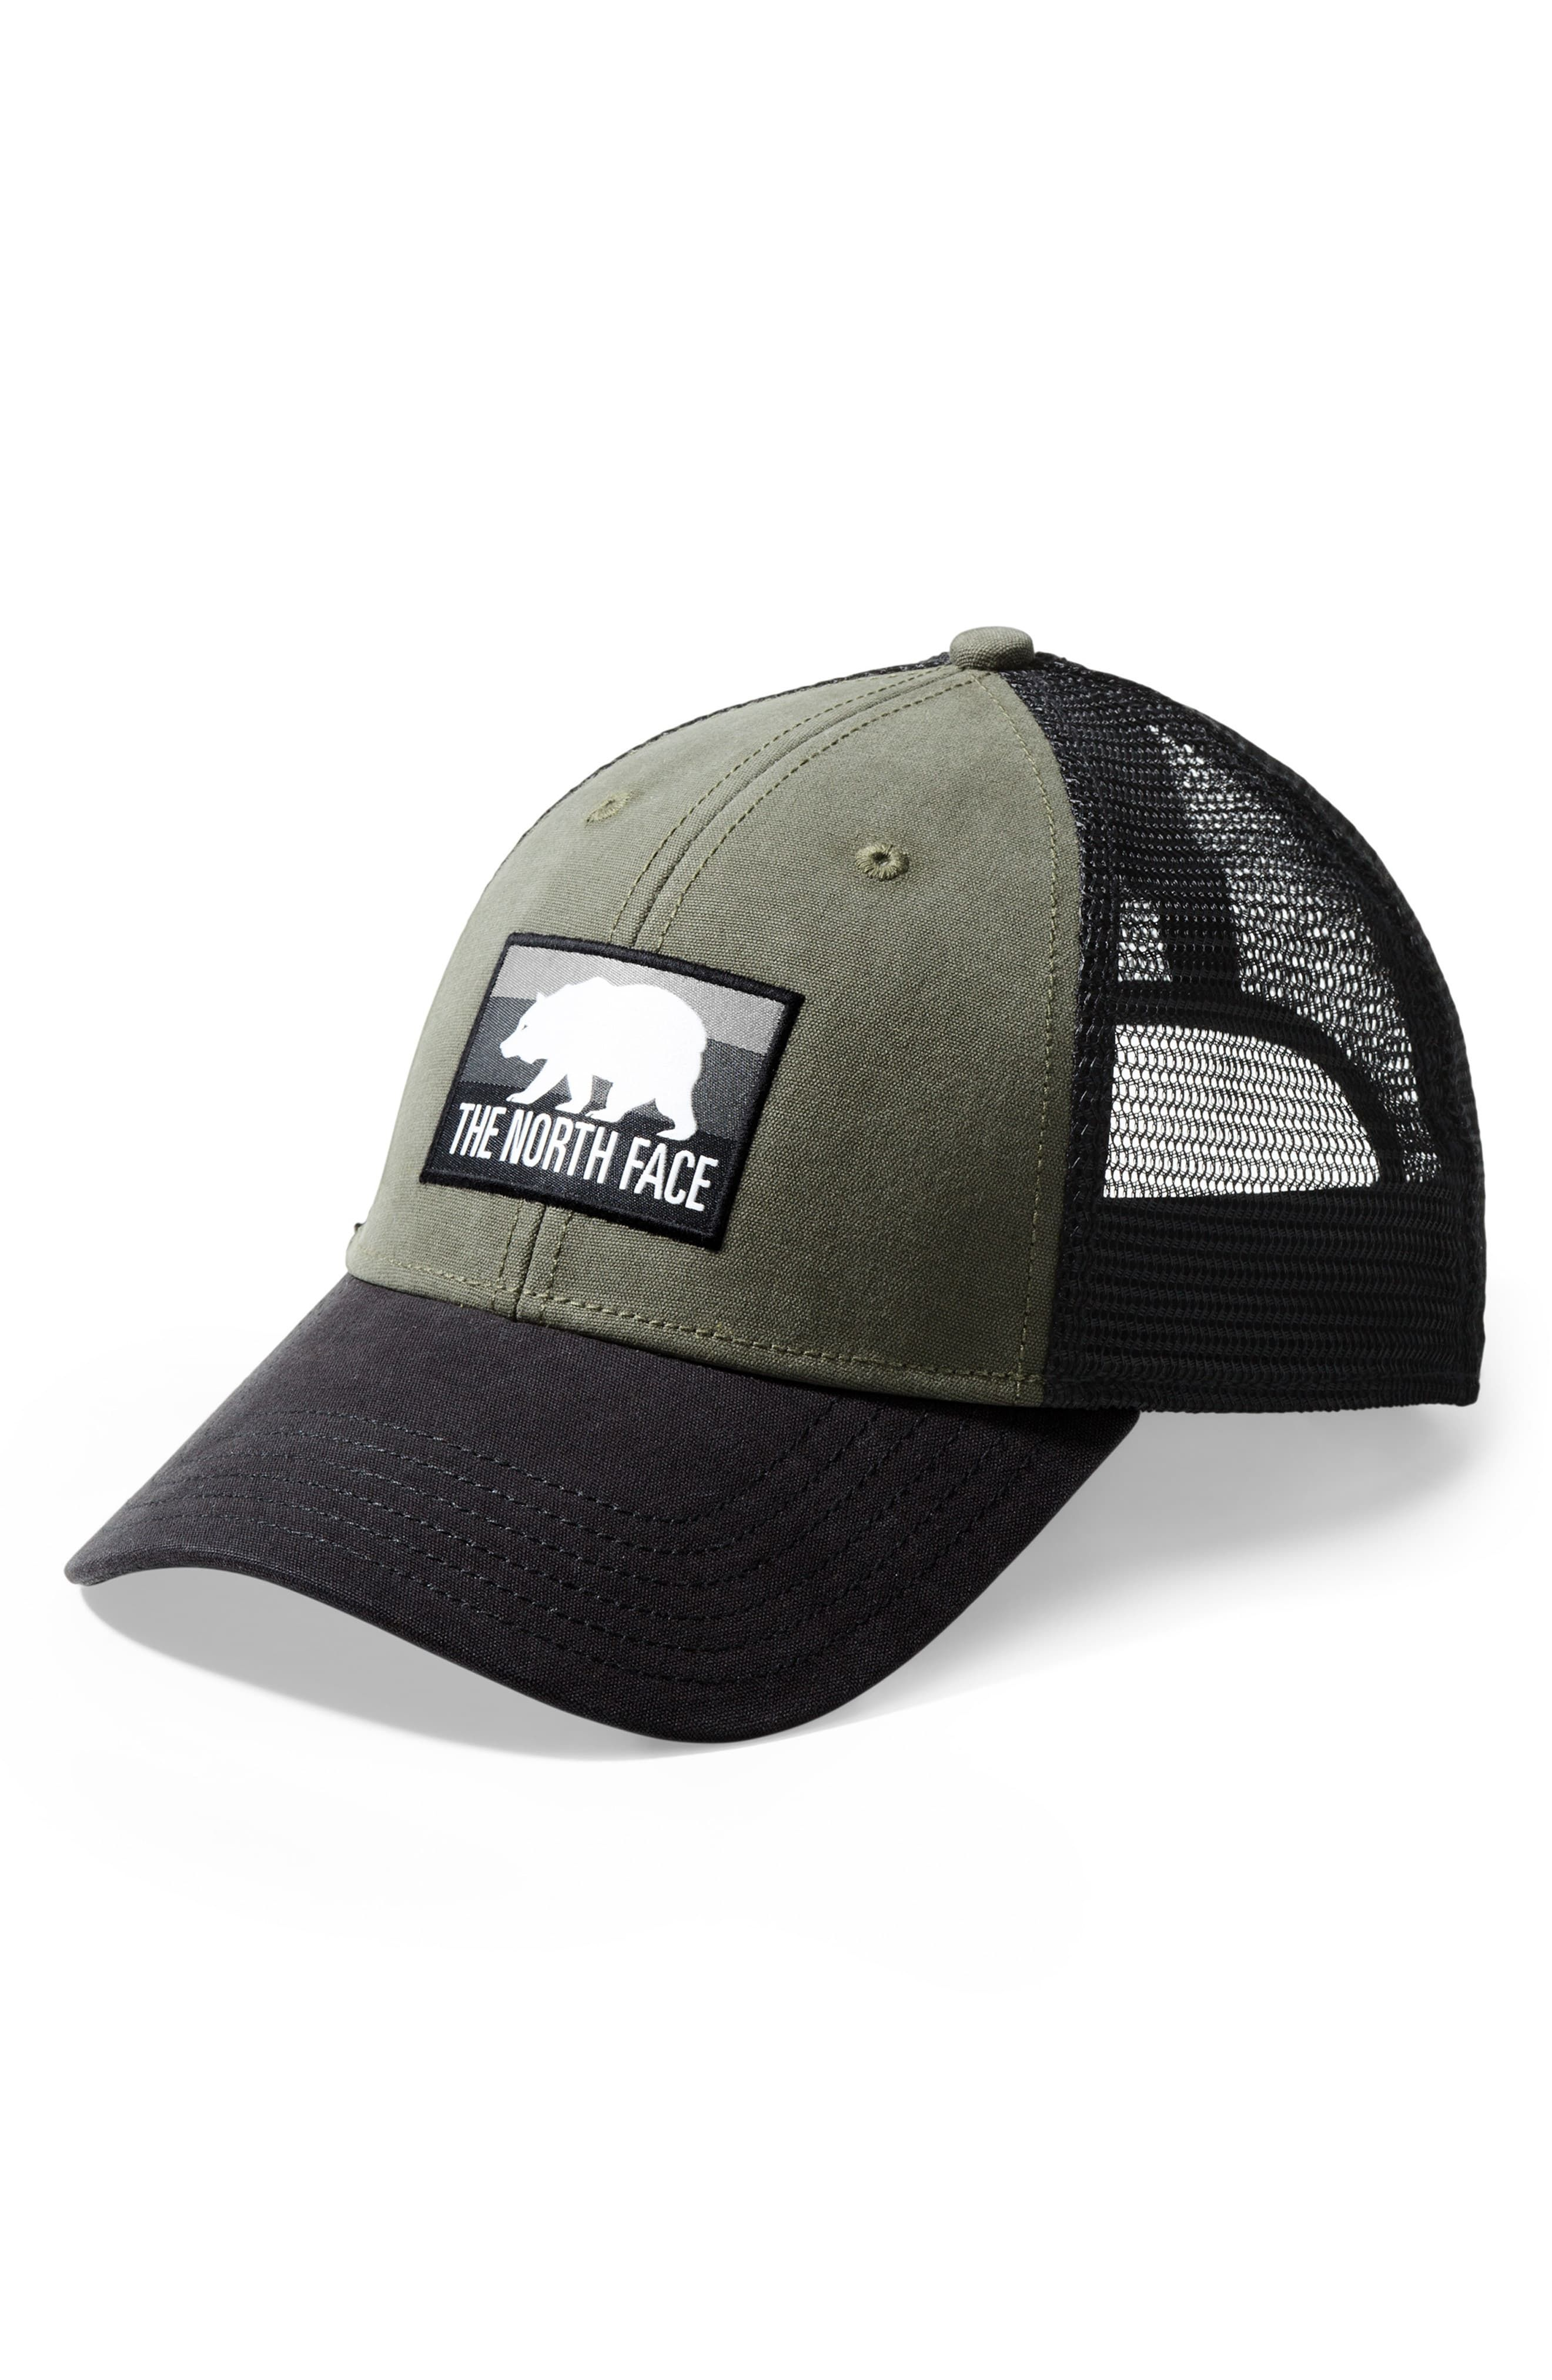 1bd9fe255 Men's The North Face Patches Trucker Cap - Green | Products in 2019 ...